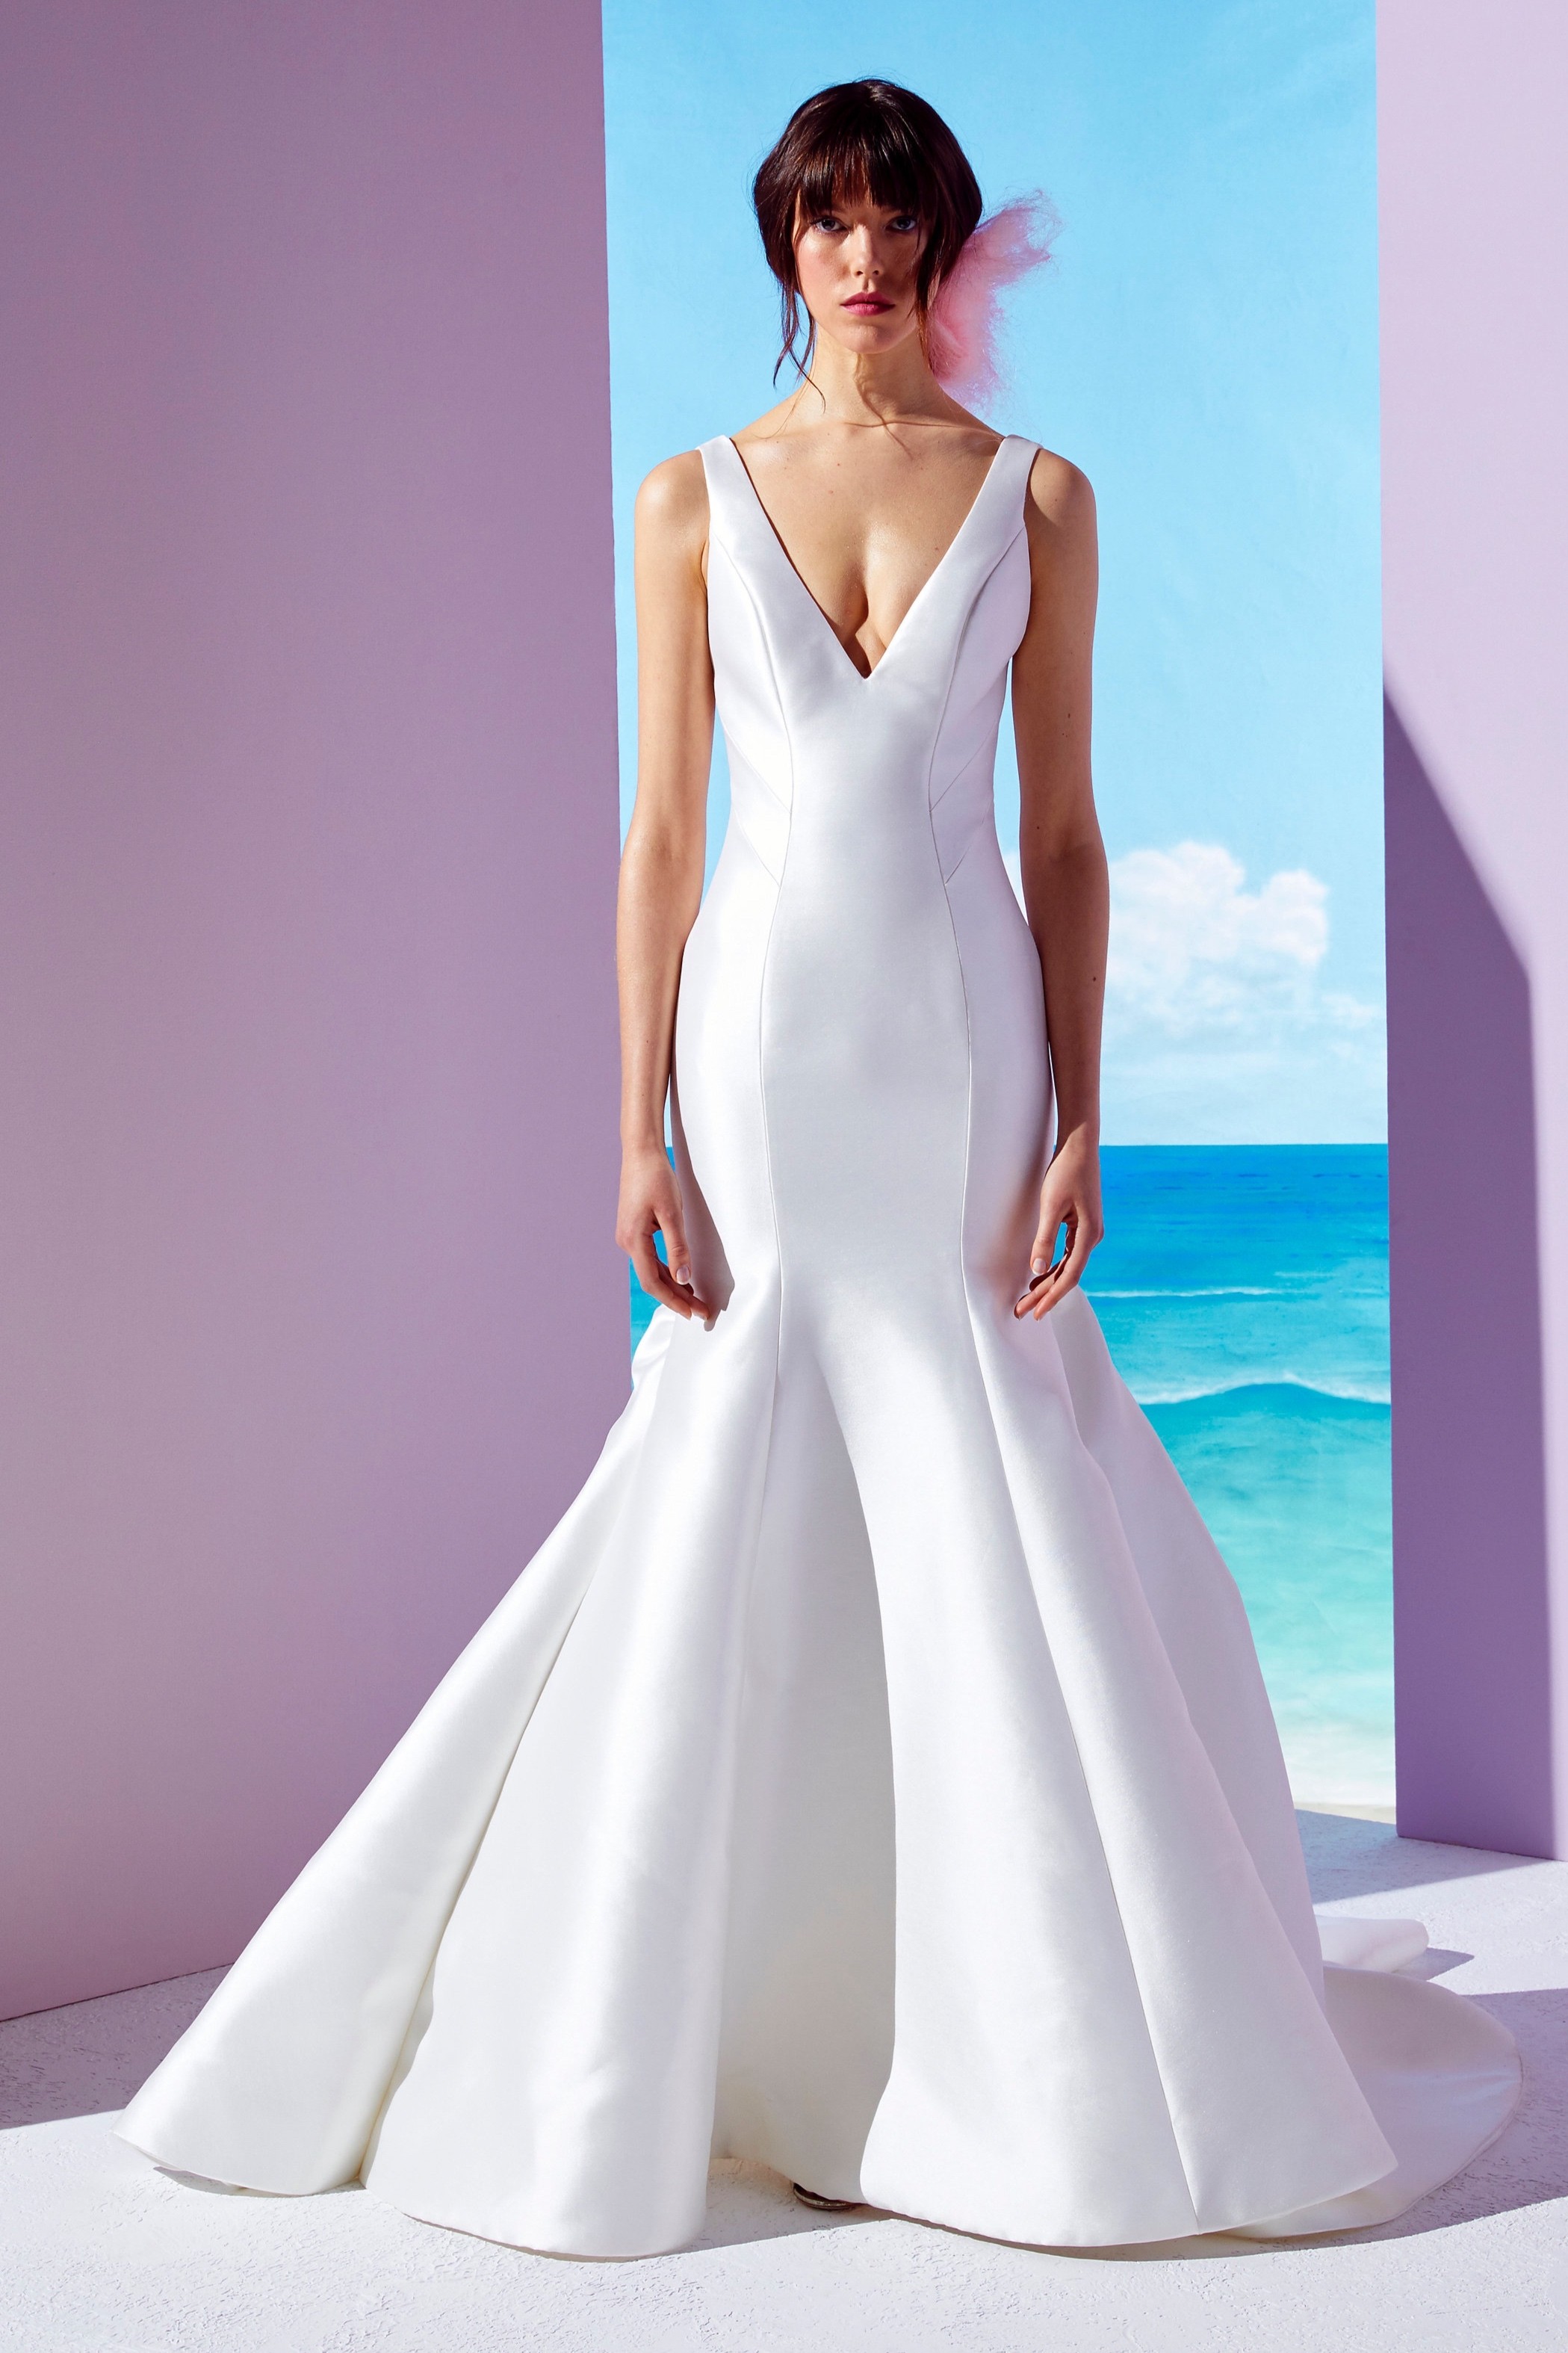 Ines by Ines Di Santo Bridal Spring 2019   BAILEY    INQUIRE